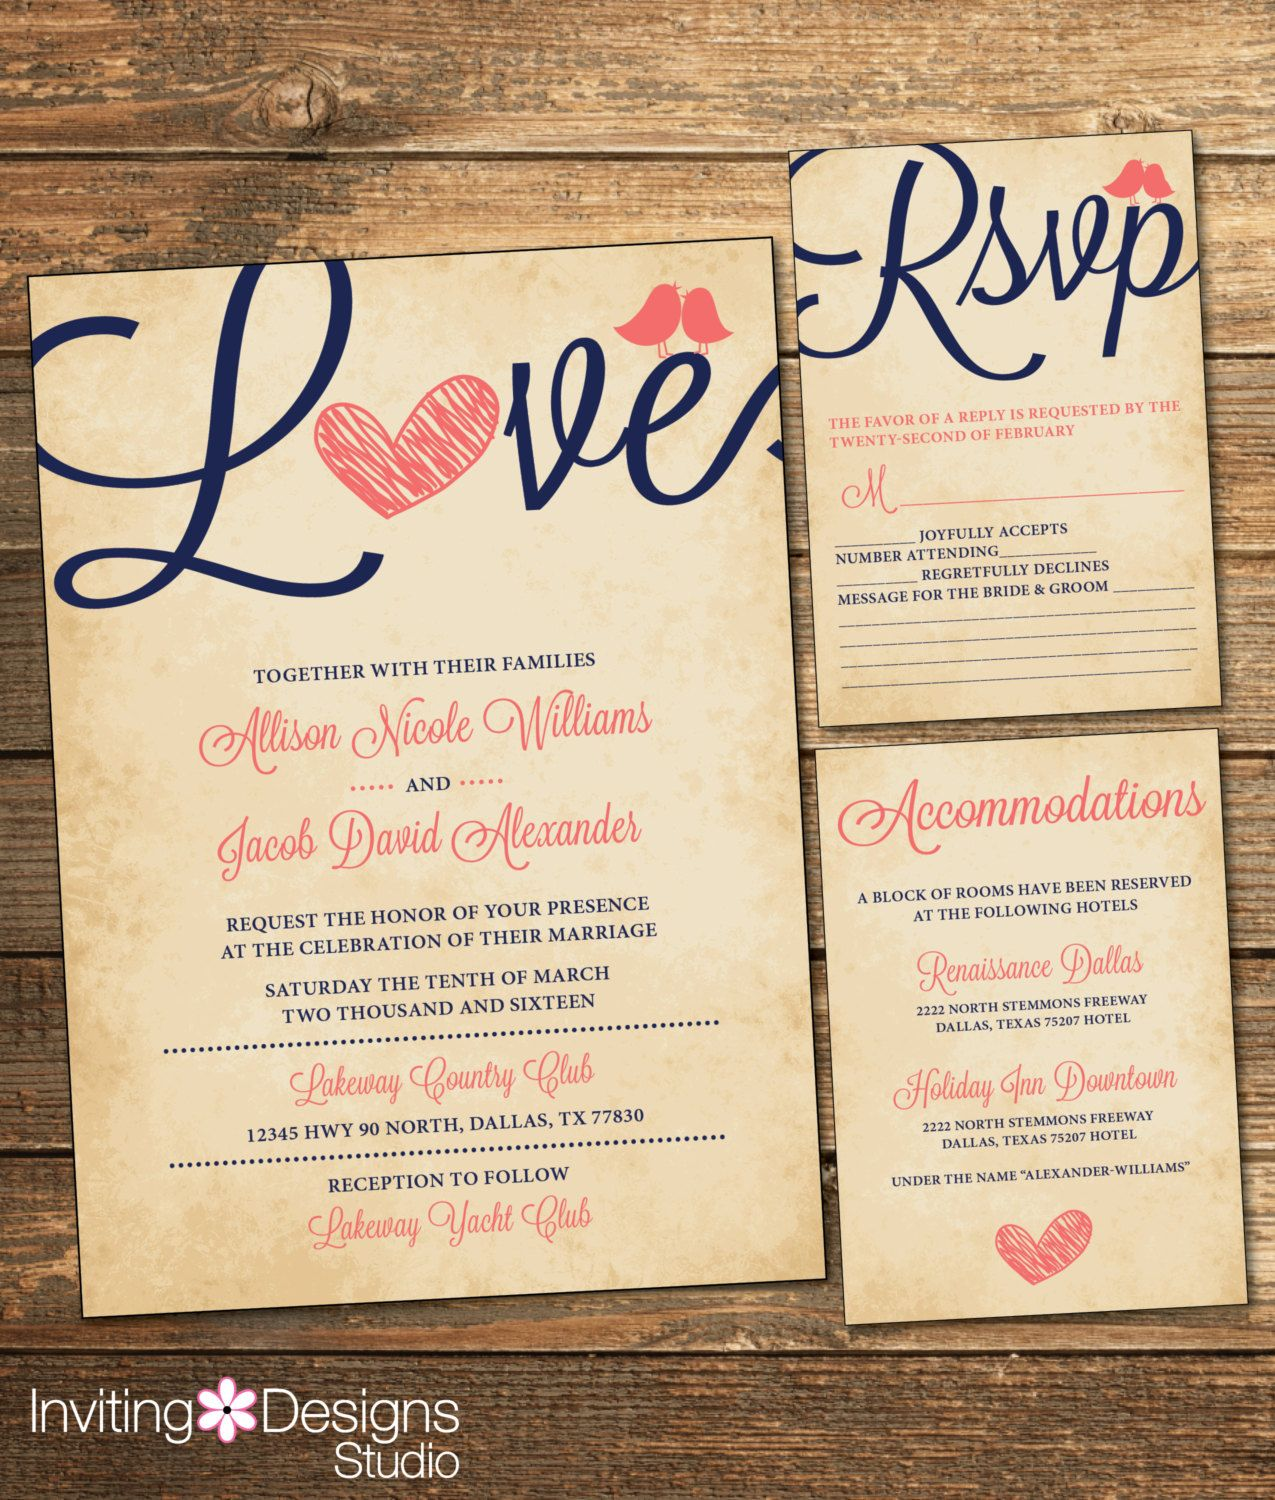 creative wedding response cards%0A rsvp card wording  cute food choice idea  even if we don u    t have choices for  people    Wedding Ideas   Pinterest   Rsvp  Choices and People